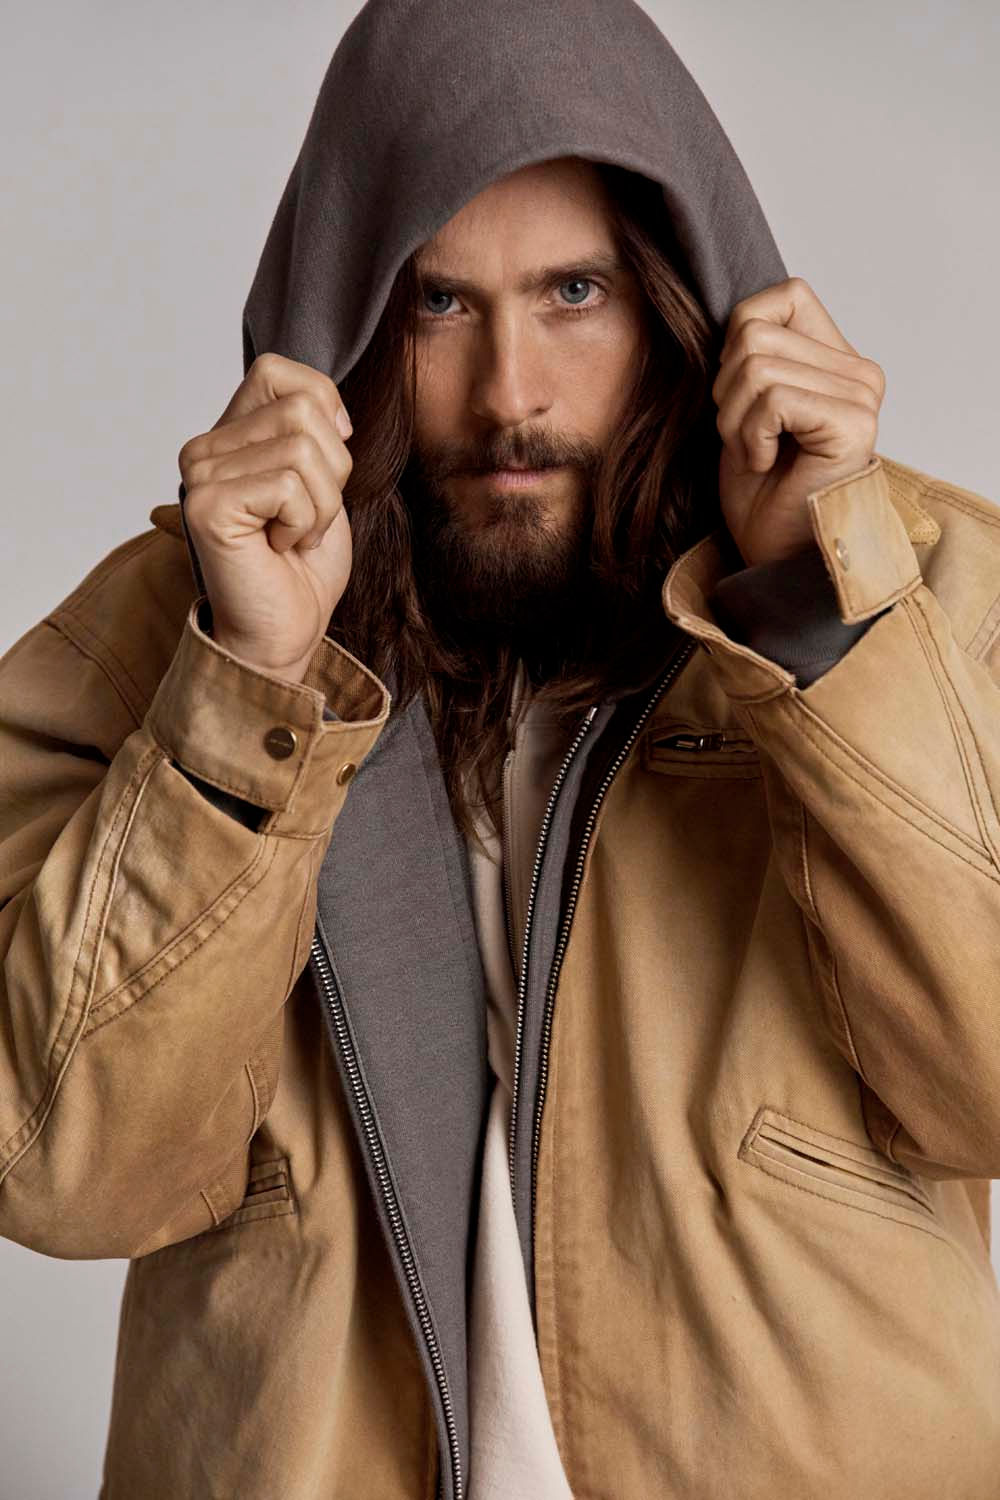 https_%2F%2Fhypebeast.com%2Fimage%2F2018%2F09%2Ffear-of-god-6-sixth-collection-jared-leto-nike-37.jpg